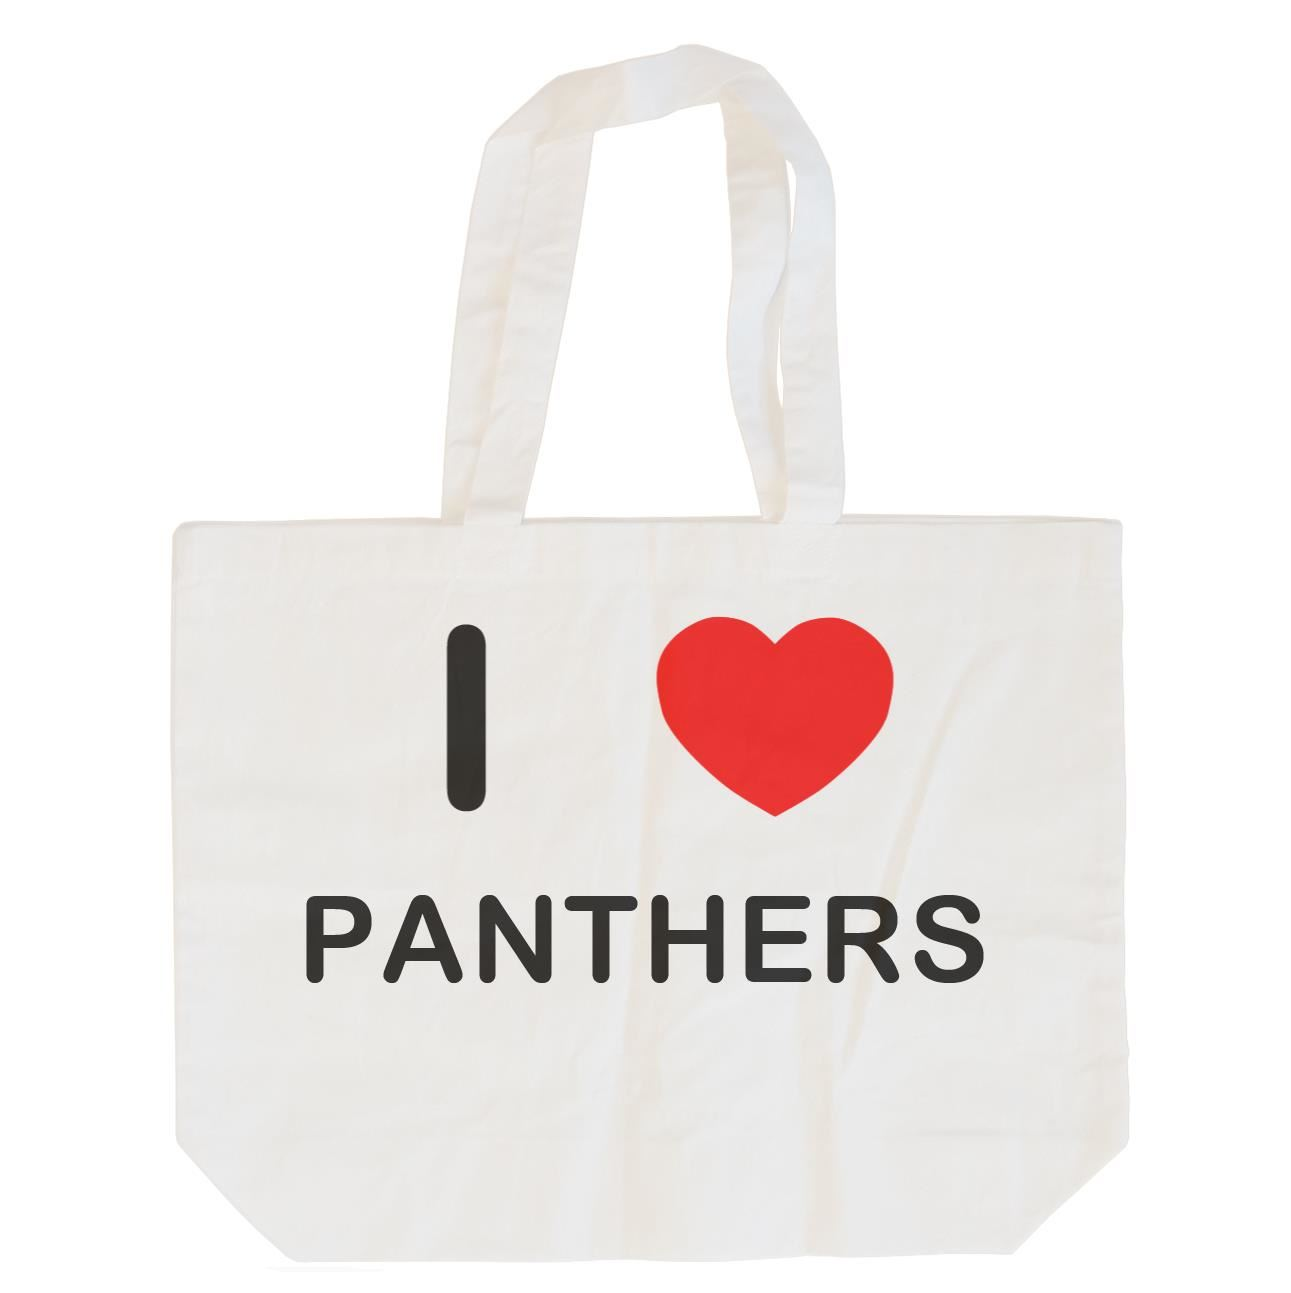 I Love Panthers - Cotton Bag | Size choice Tote, Shopper or Sling